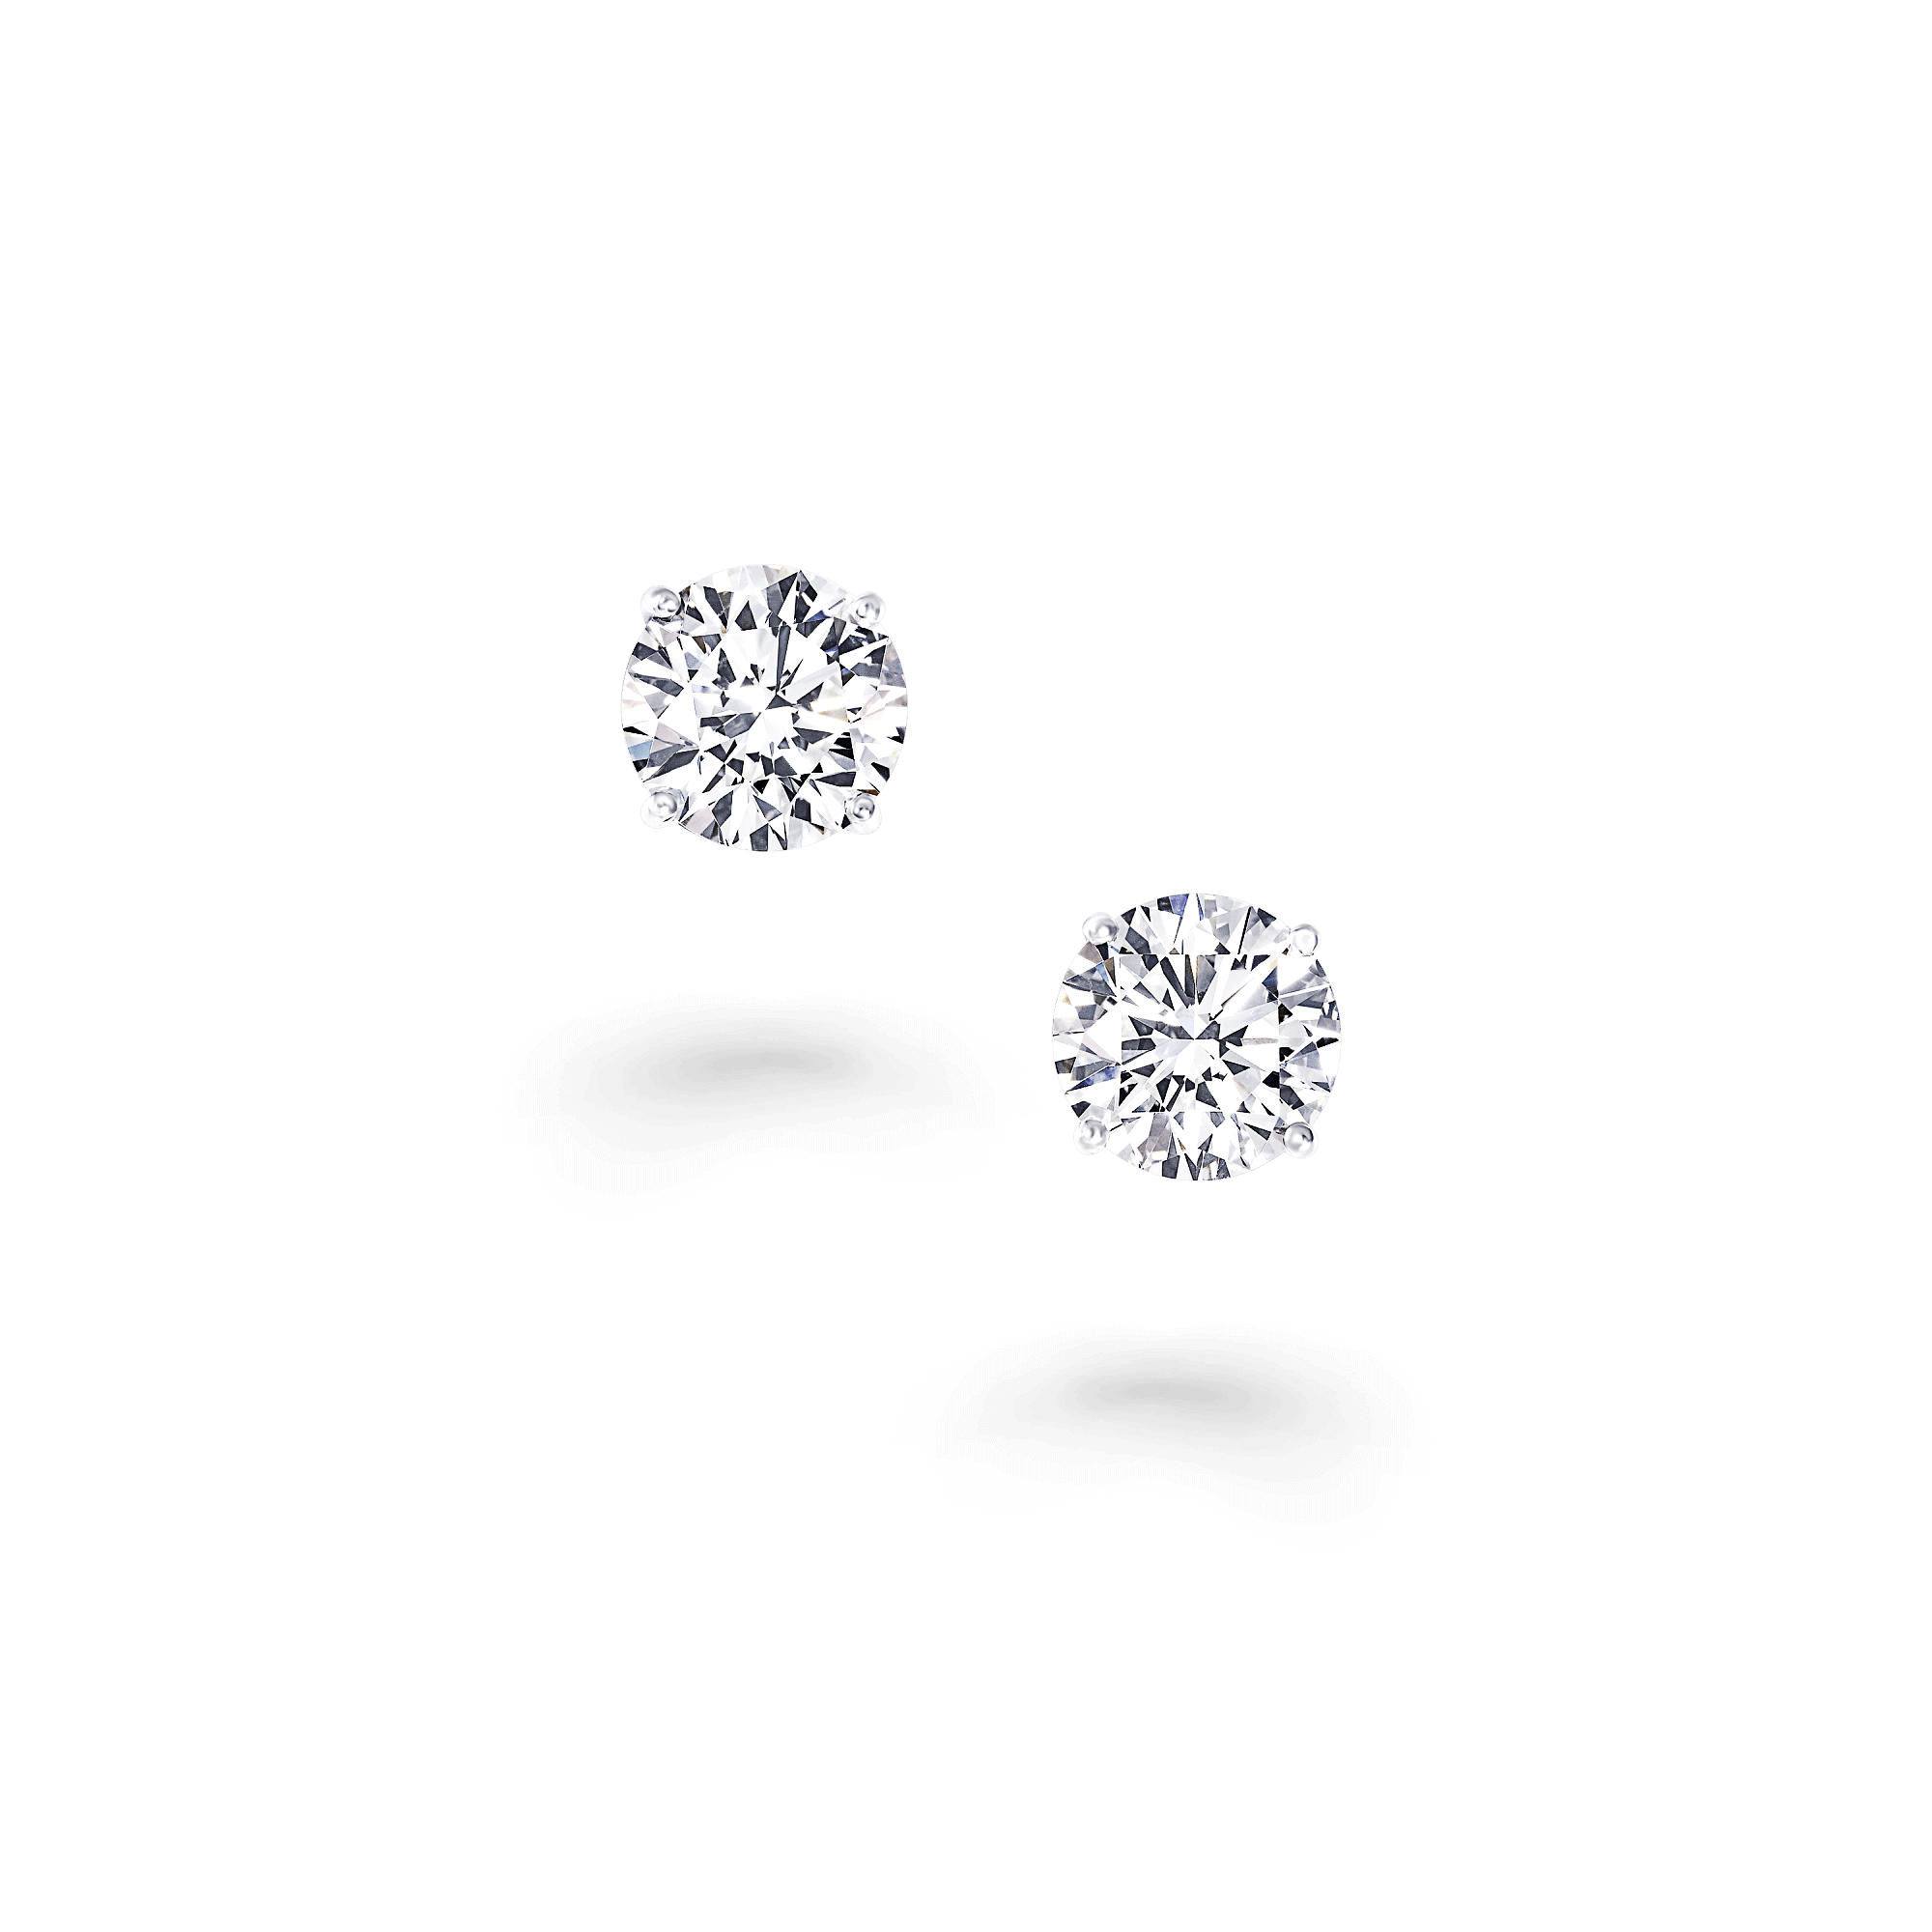 Earring transparent stud. Classic graff round earrings